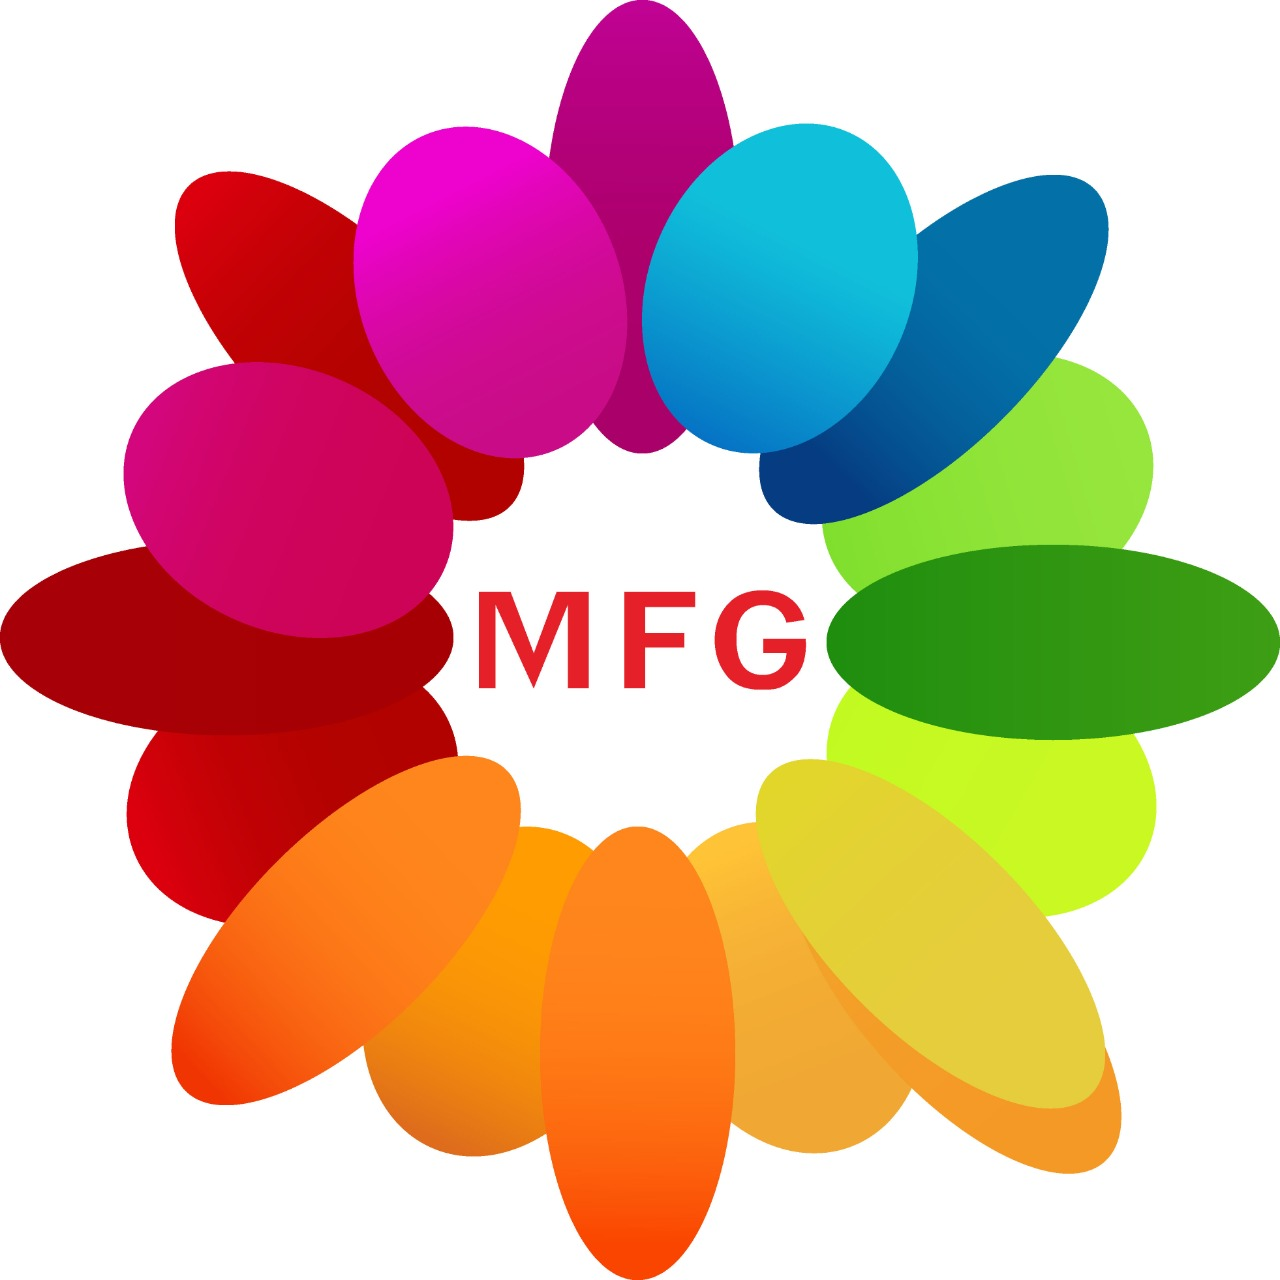 hand bouquet of 12 red roses with 6 white lilies